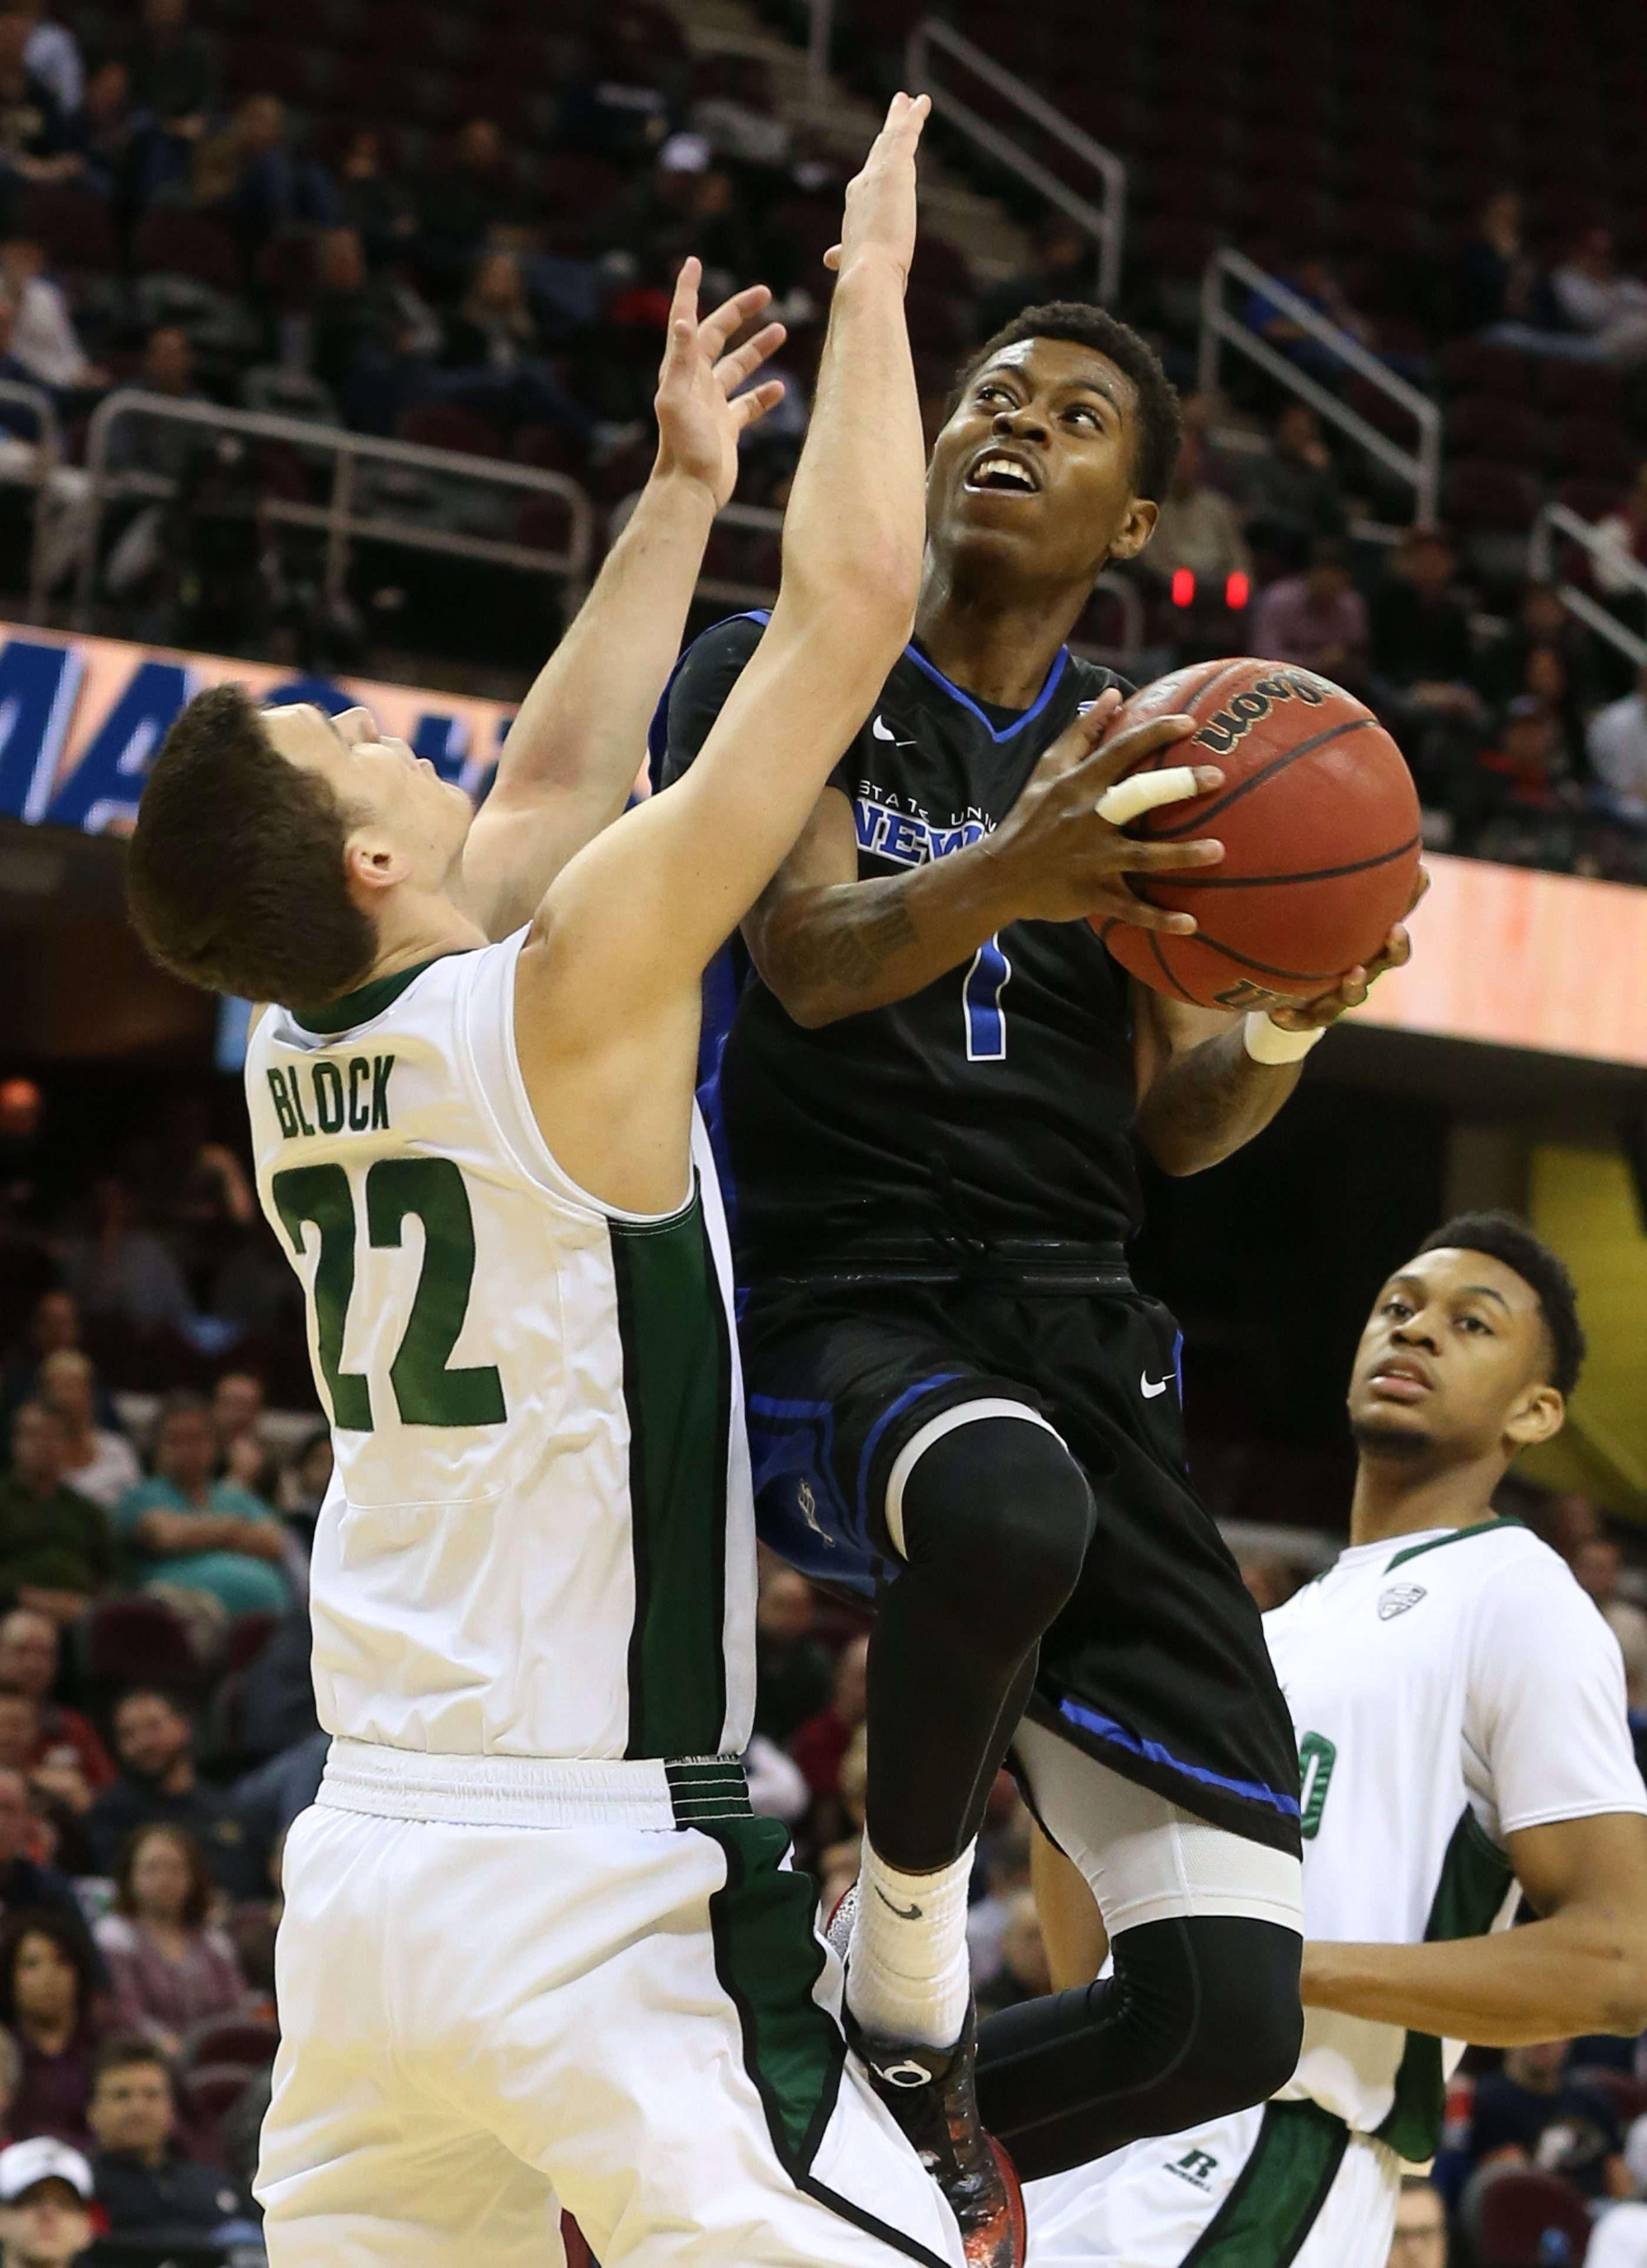 At left, UB's Lamonte Bearden (1) scores two points over Ohio Bobcats. At center, UB's Stephanie Reid scores the winning shot over Central Michigan. At right, Bona's Katie Healy shoots against George Washington.